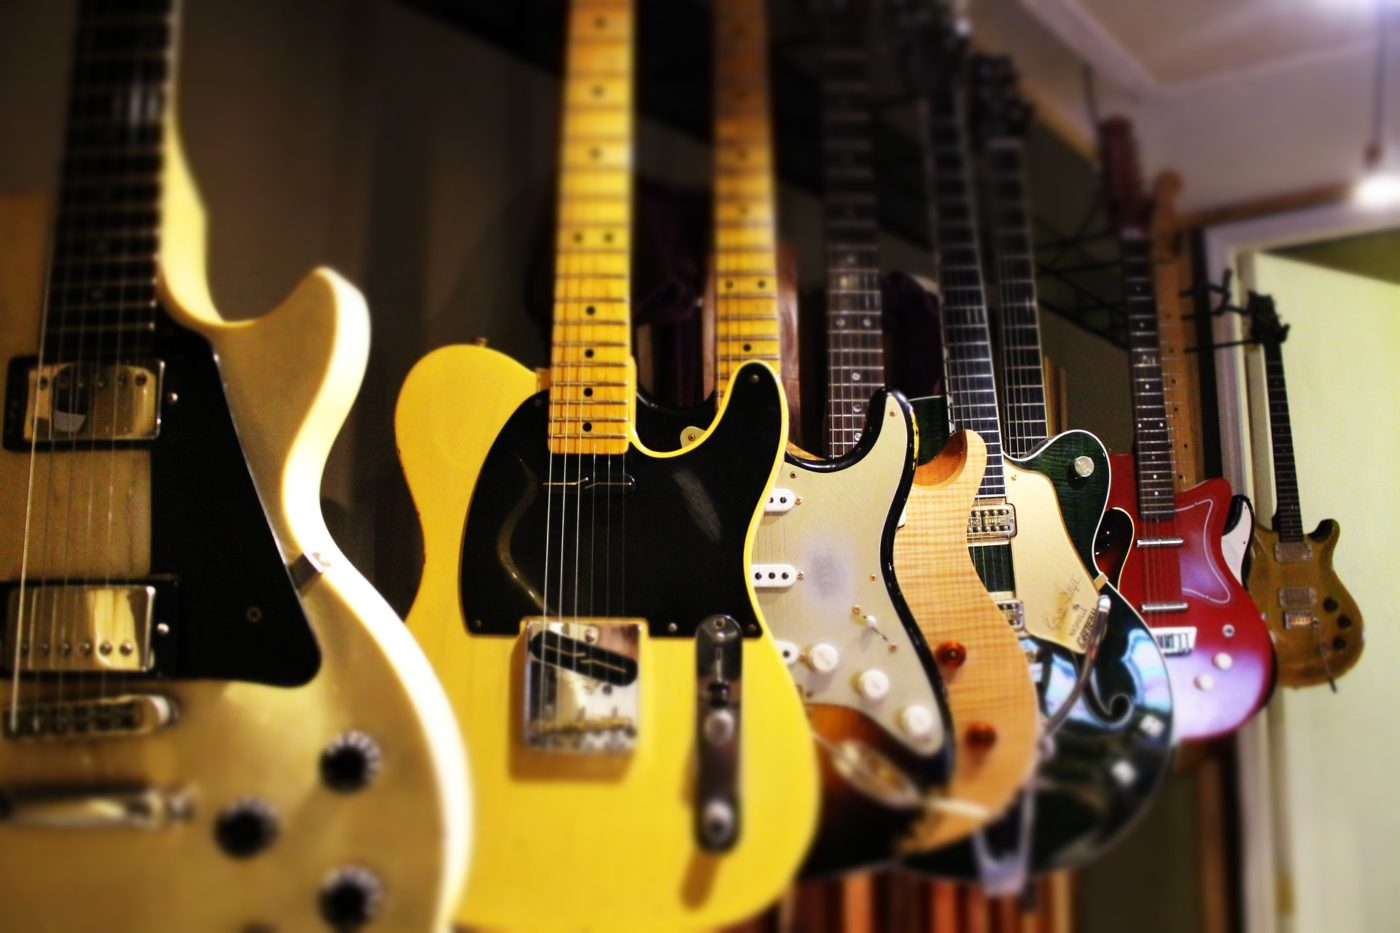 Guitars in Music City Nashville, Tennessee